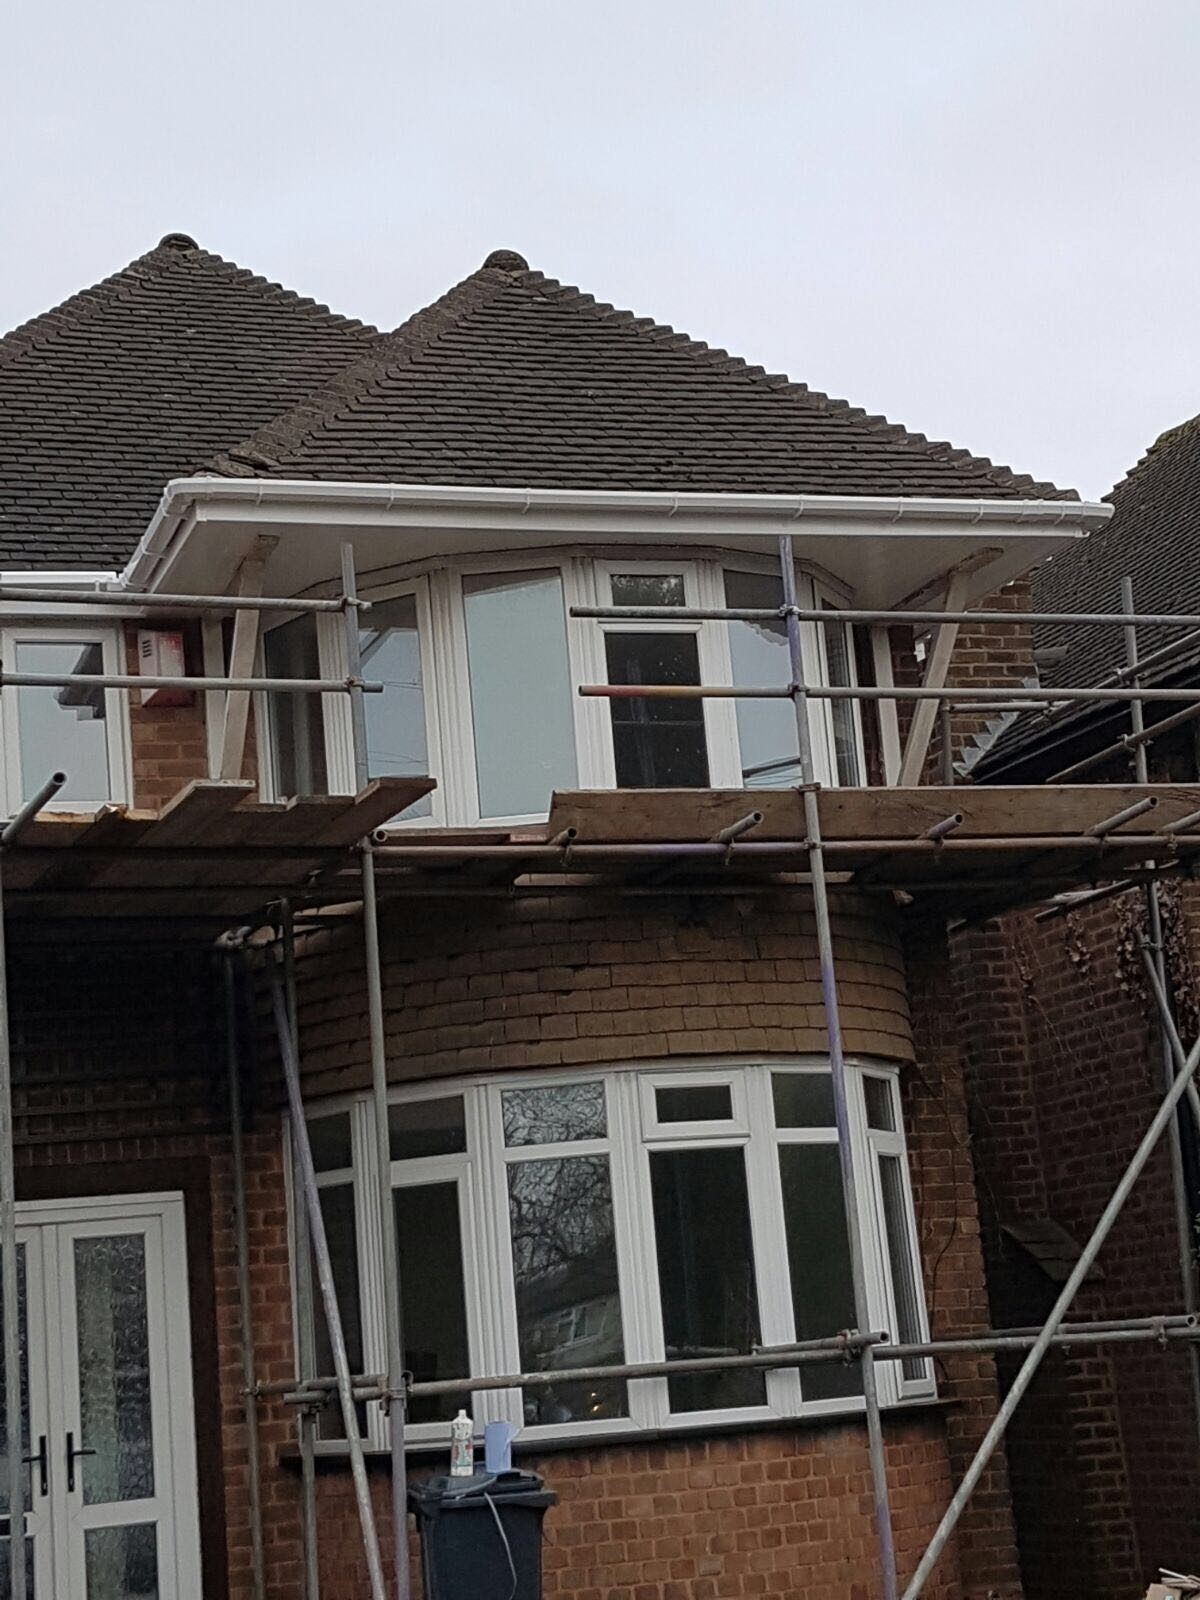 Flat Roof Warehouse : Upvc fascia board soffits gutter and downpipe